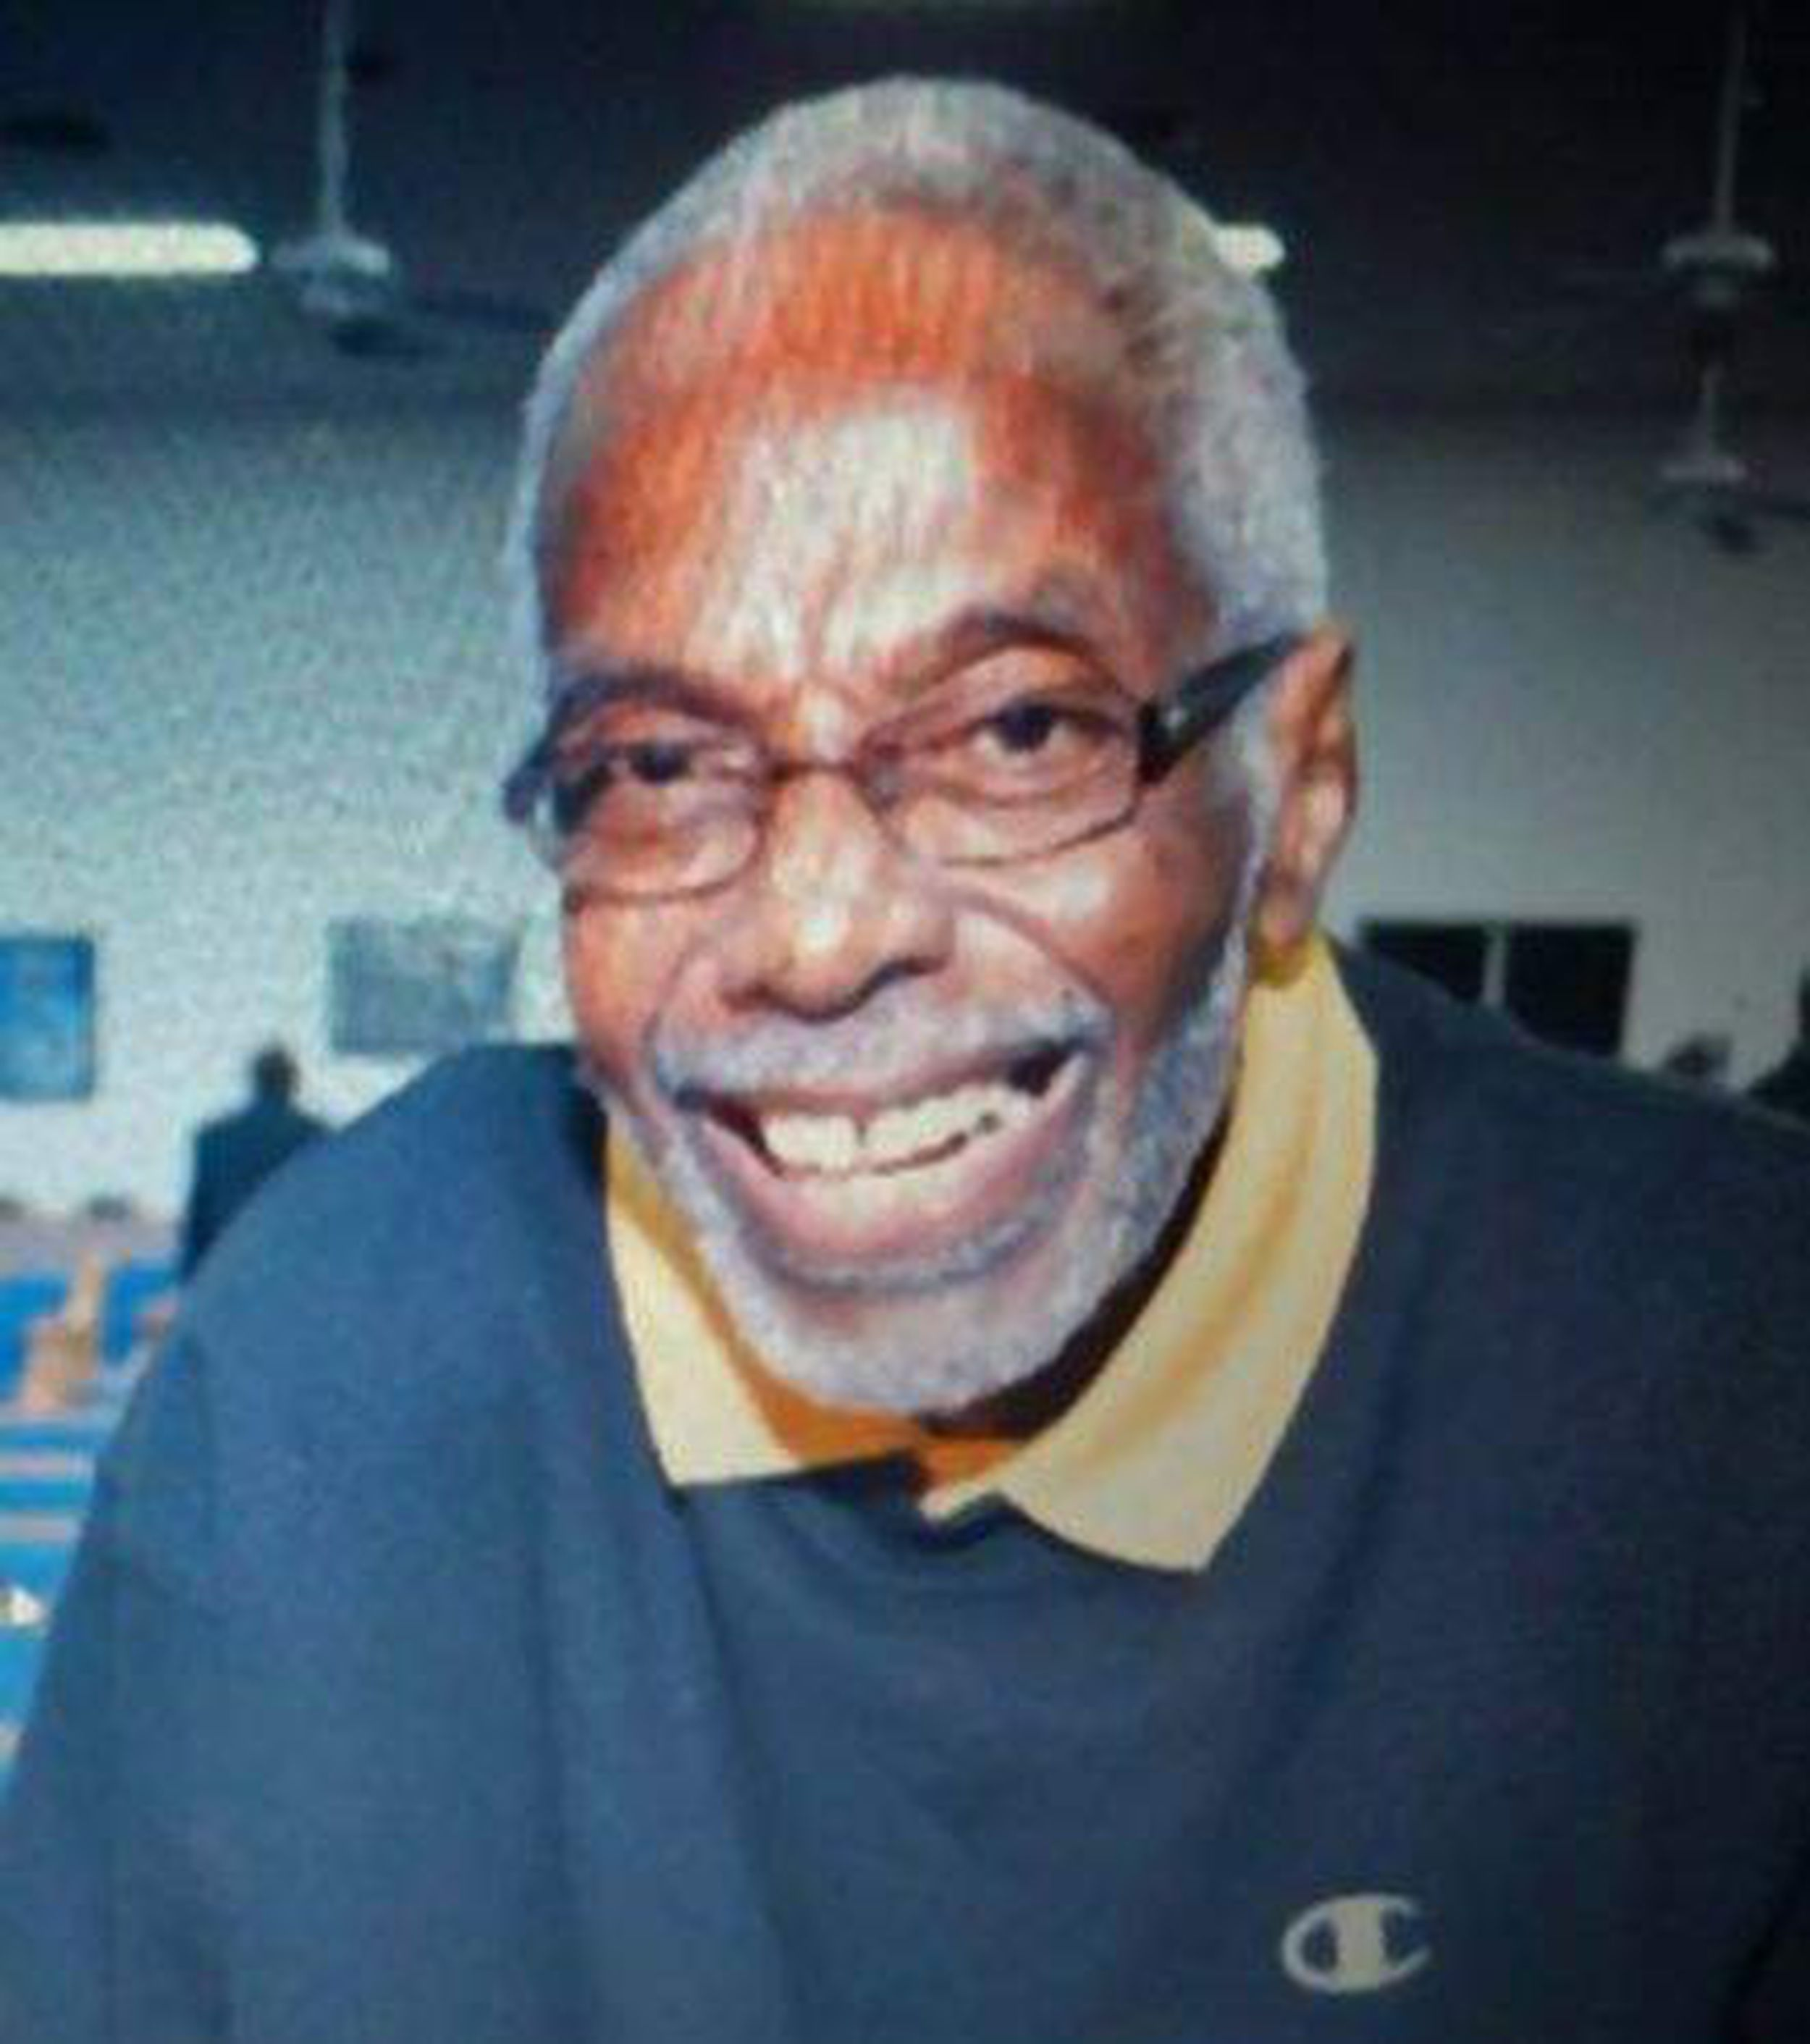 Epilogue: Tasker Beal gave his life — and love — to